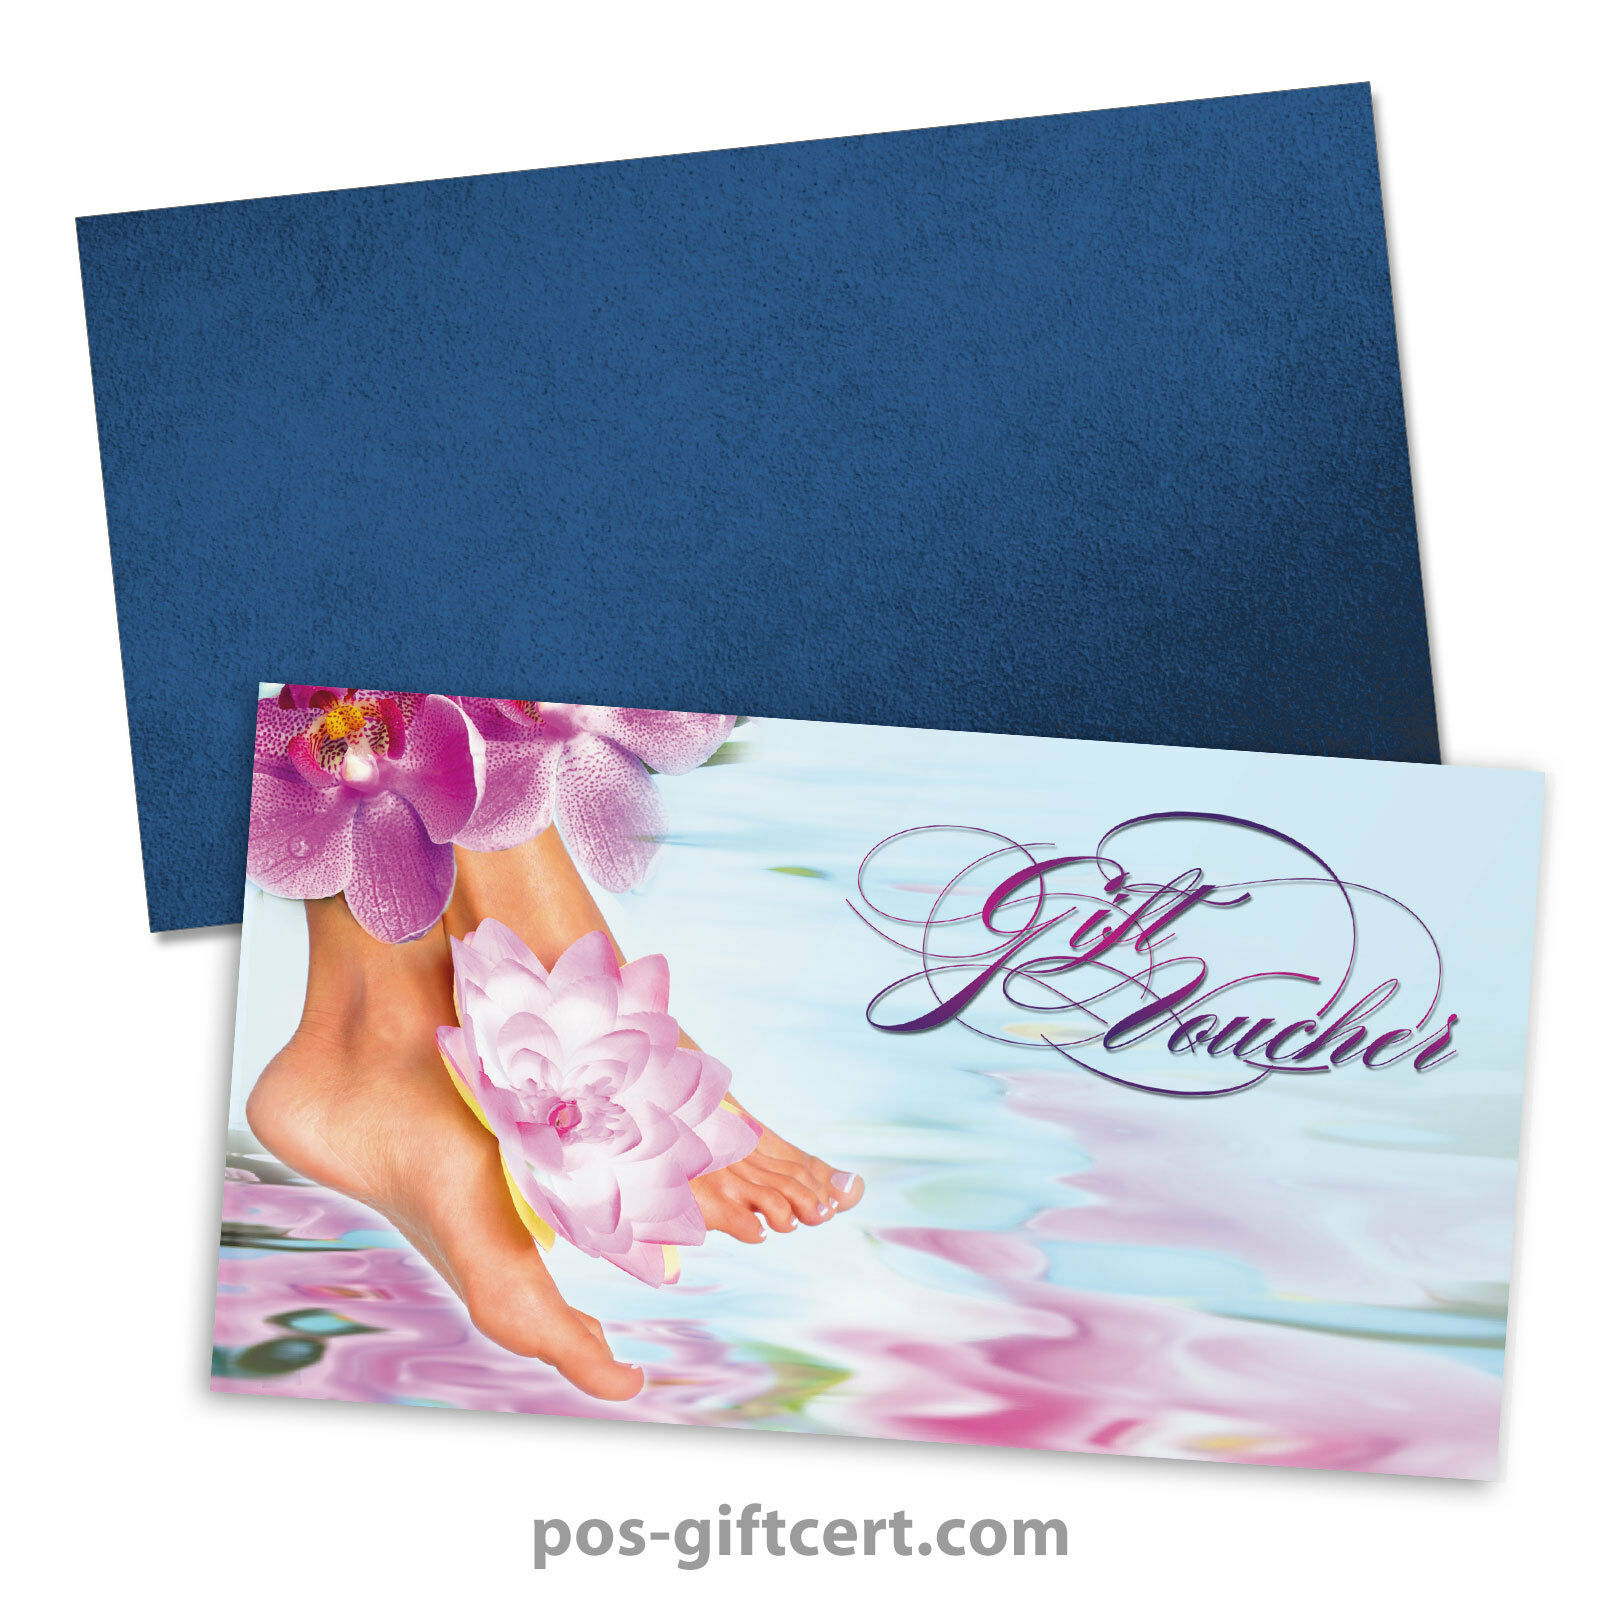 Gift vouchers + envelopes for foot and nail care, pedicure, podiatry FU1204GB